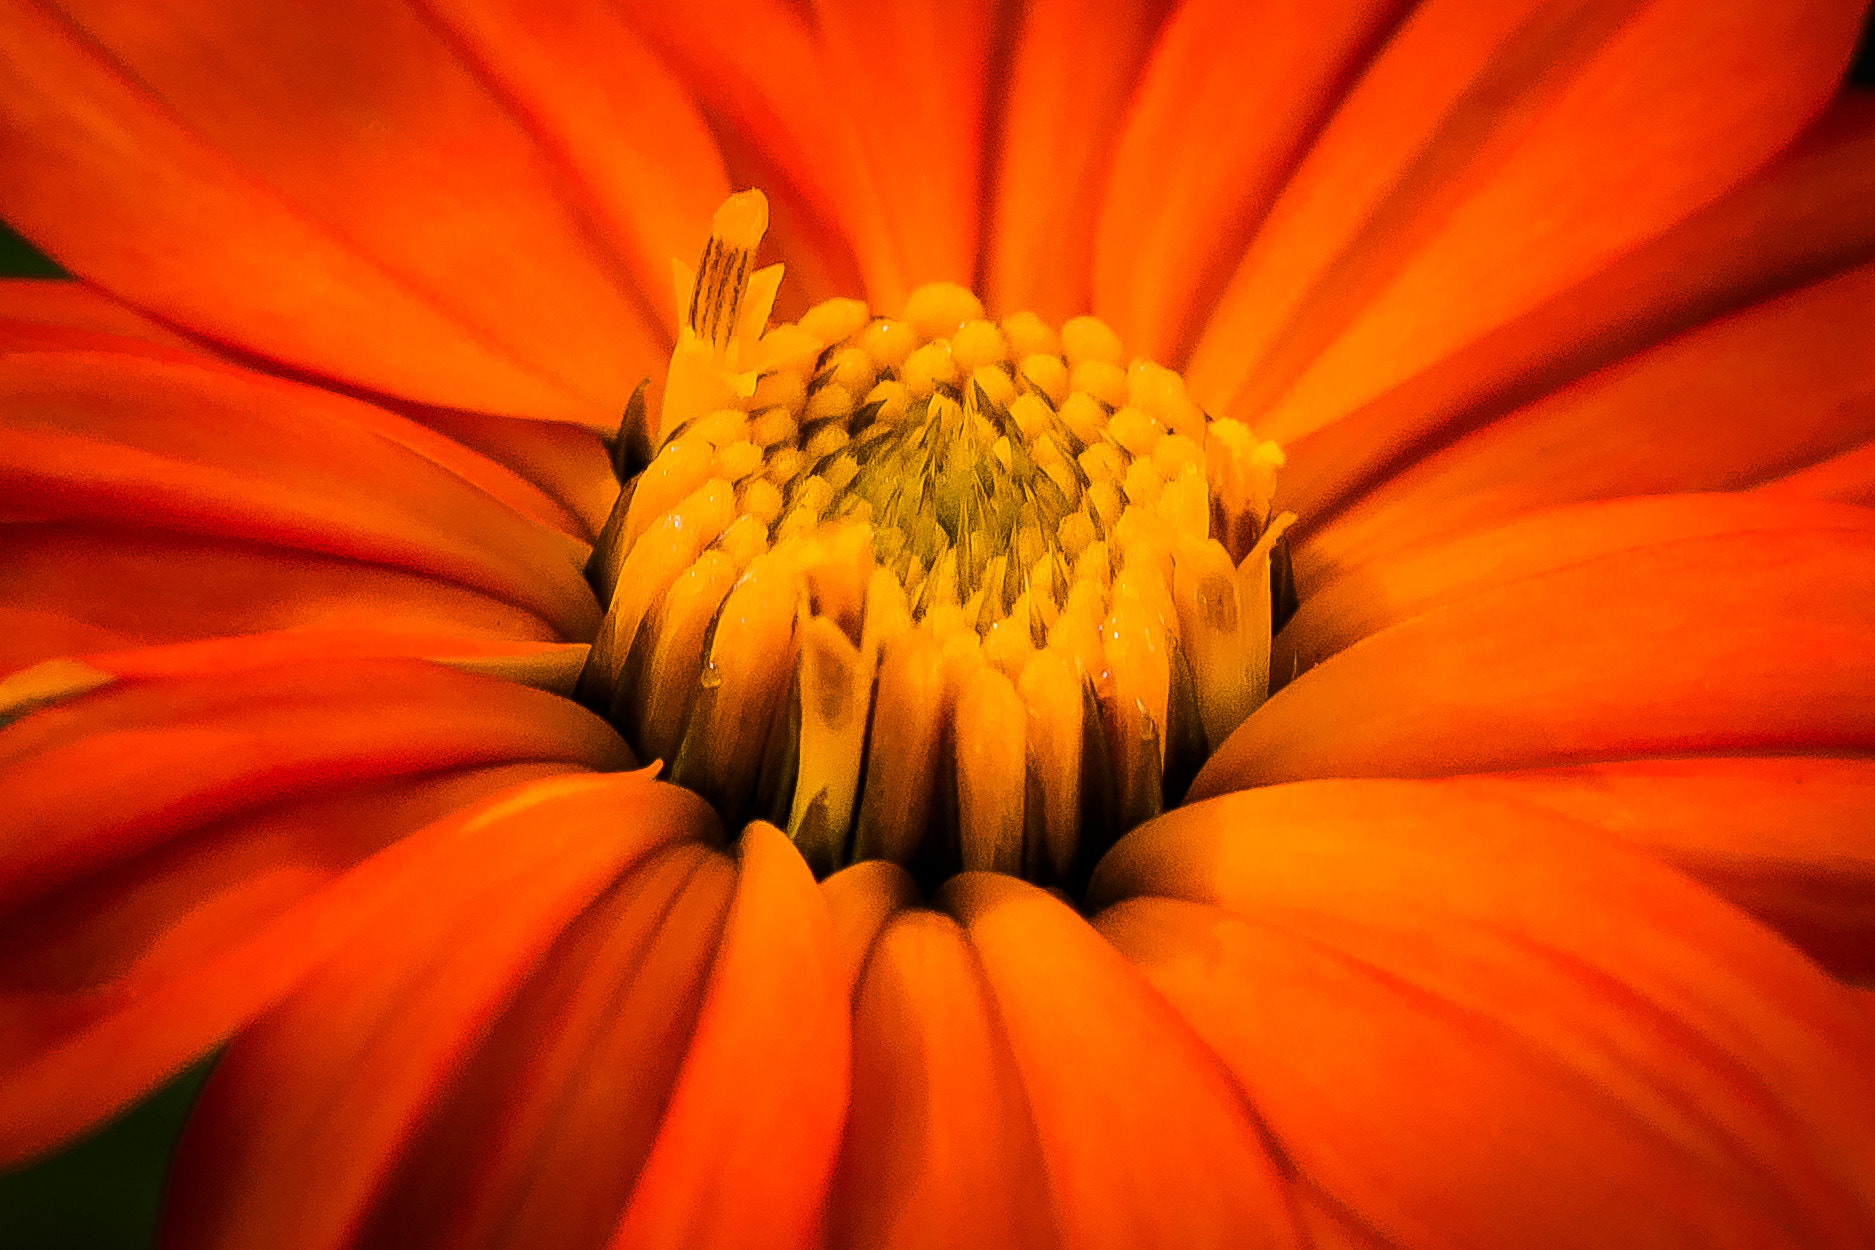 Photograph Bloom by George Bloise on 500px